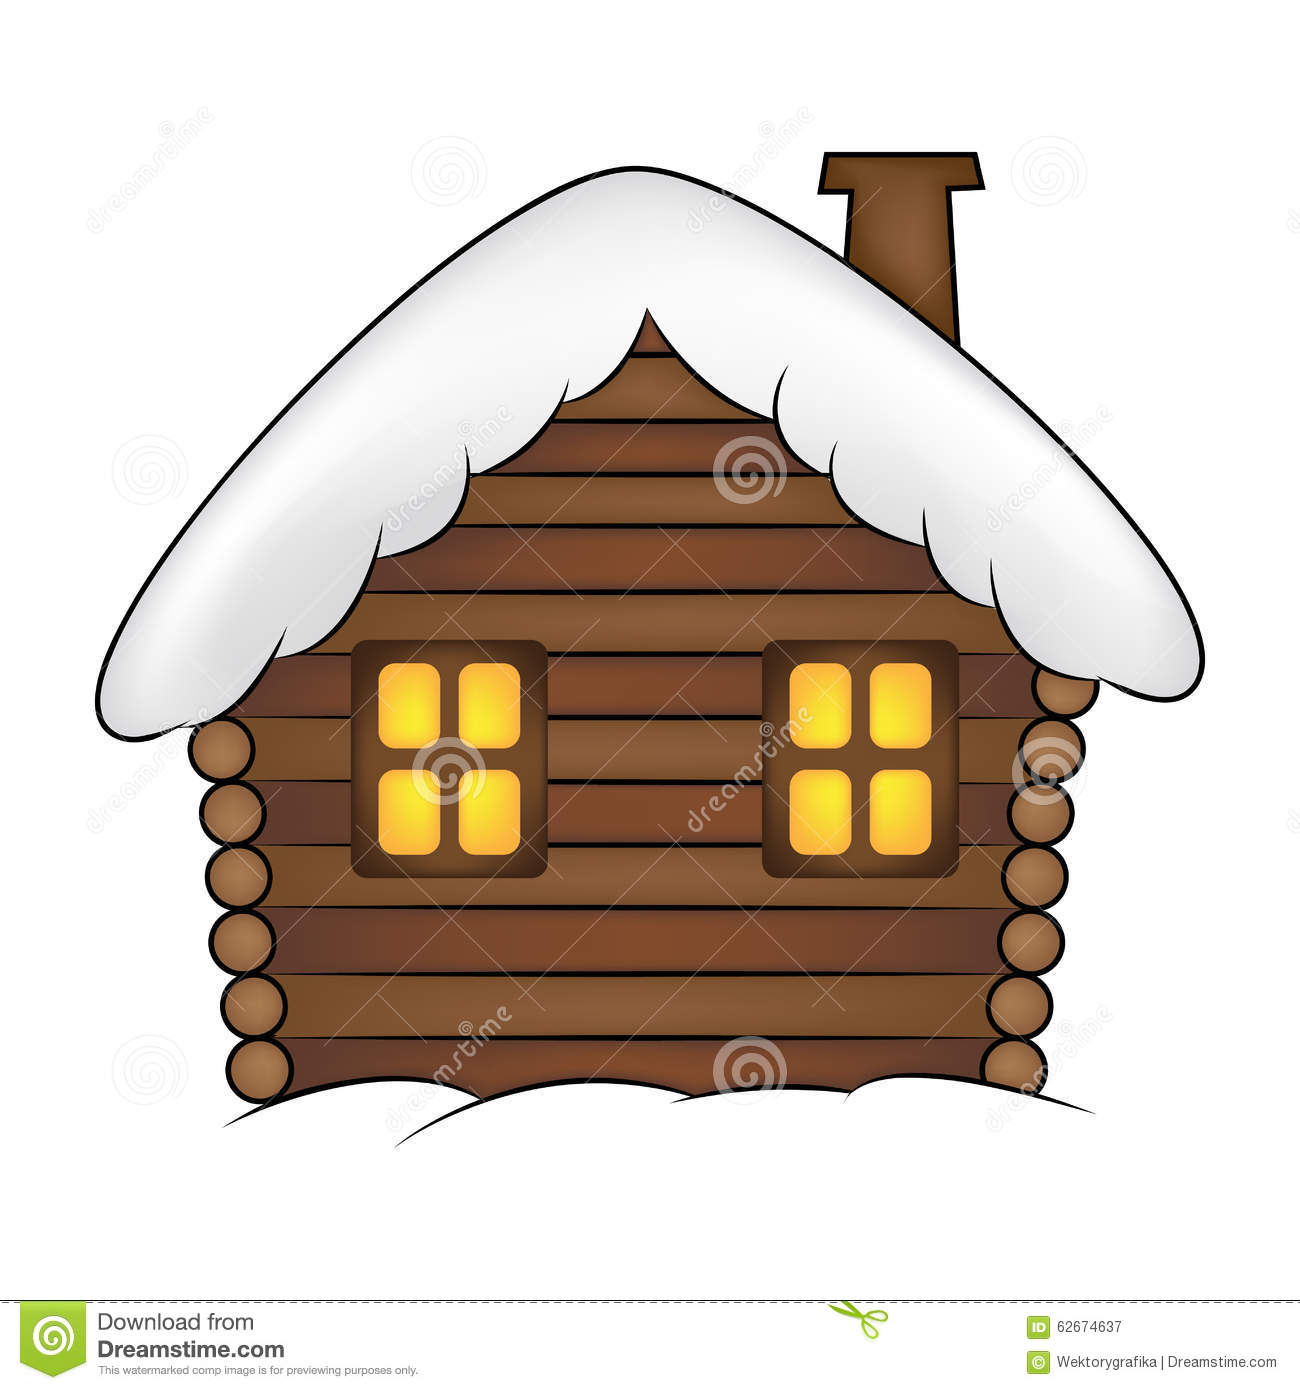 house winter clipart - photo #42